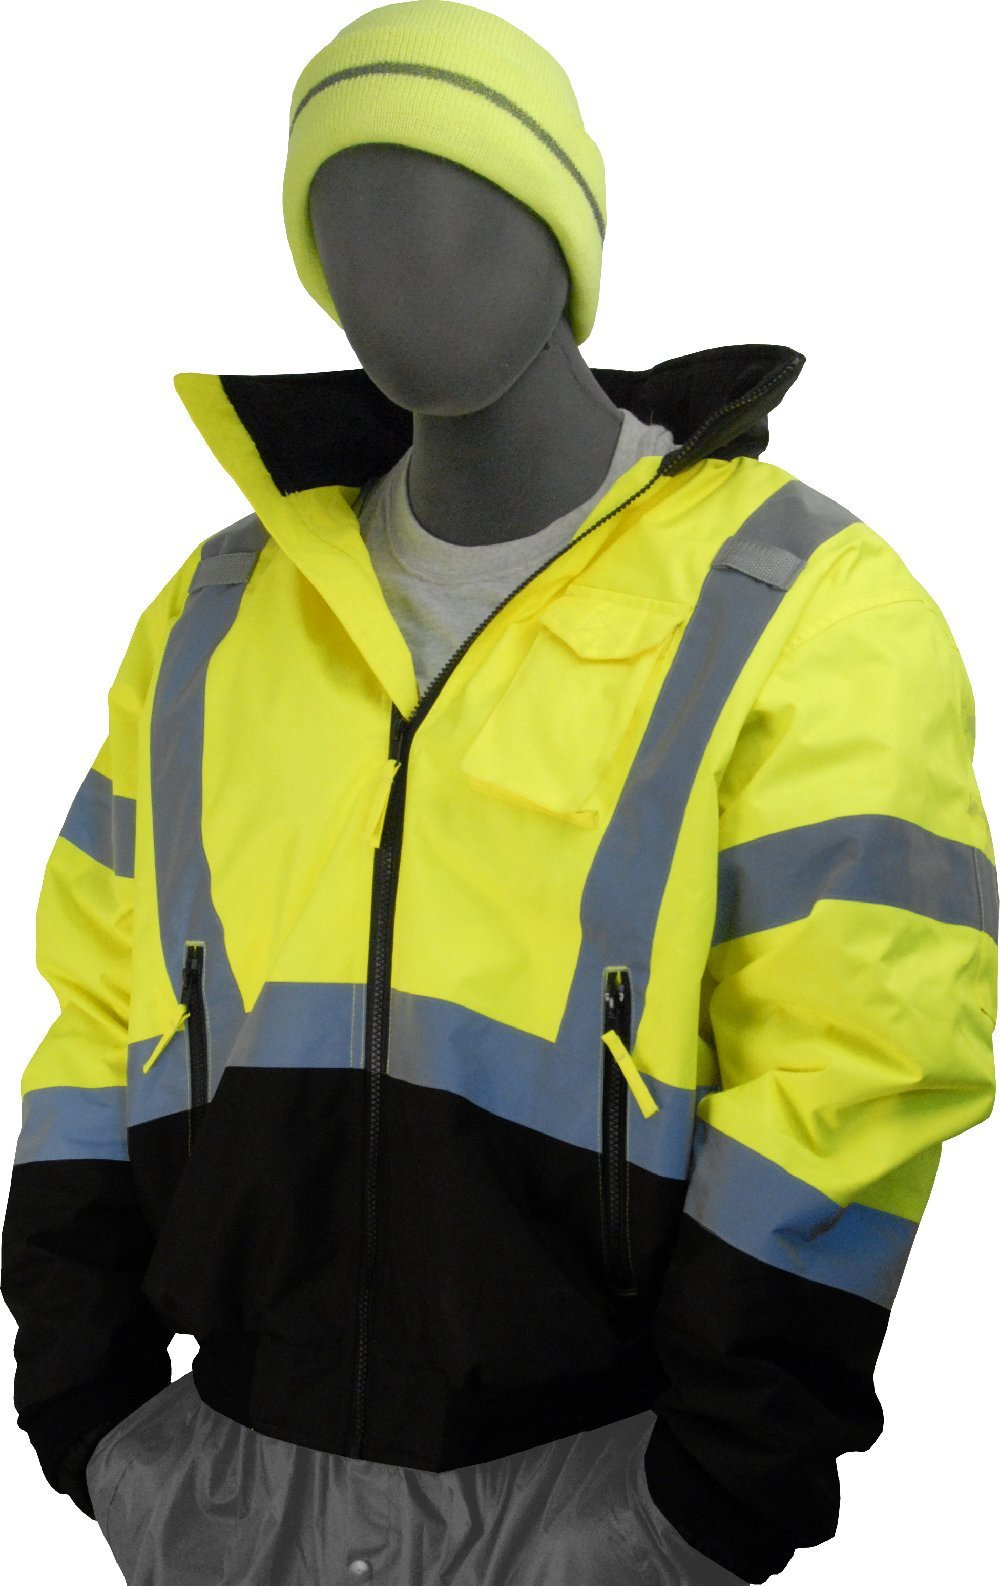 Majestic Glove 75-1313 PU Coated Polyester High Visibility Bomber Jacket with Black Bottom and Fix Quilted Liner, Large, Yellow